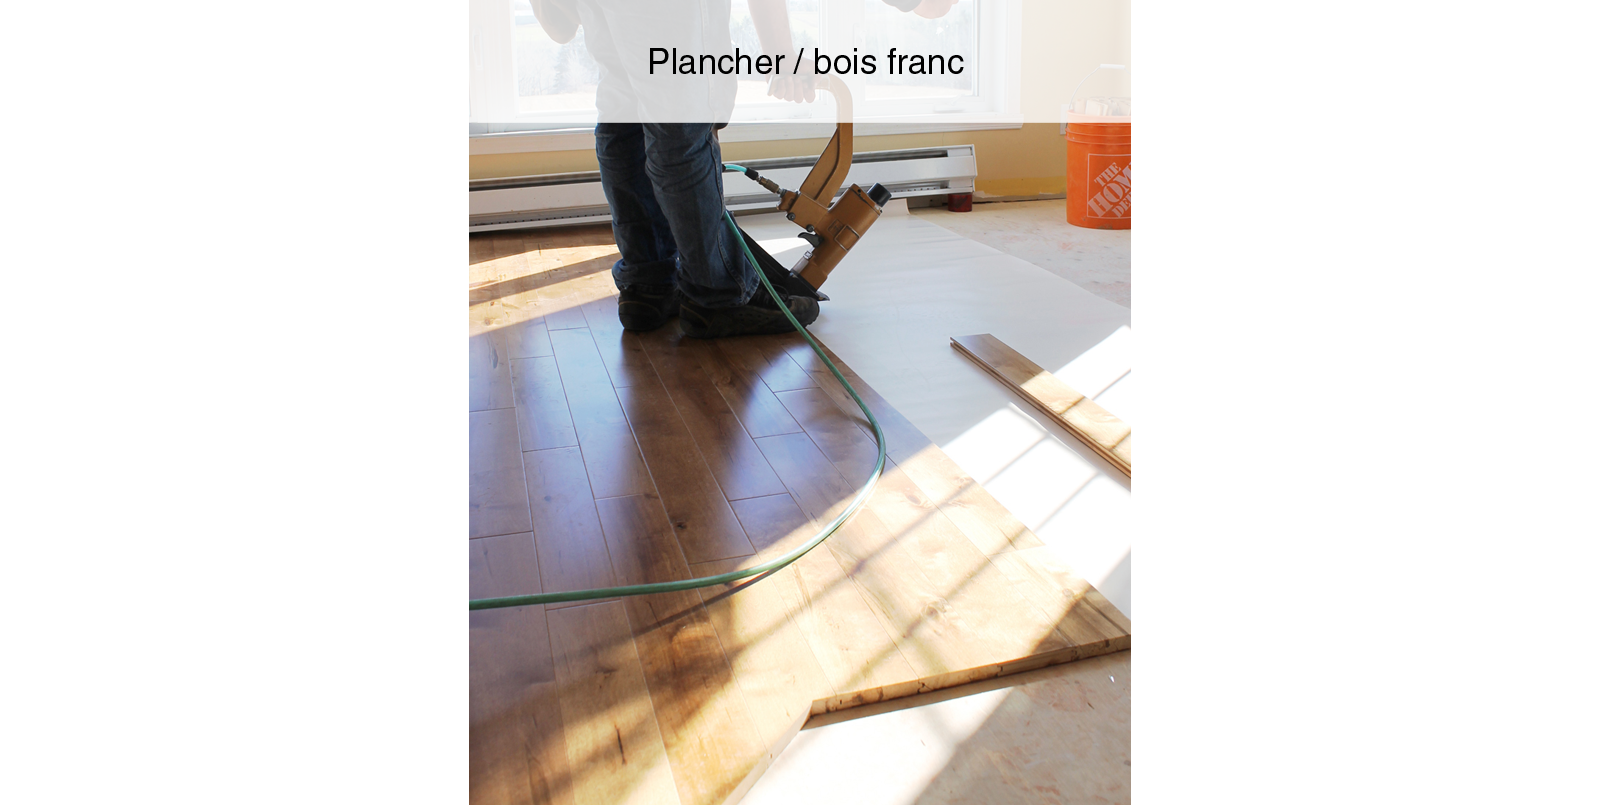 49-1-PANACHE-CONSTRUCTION-RENOVATION-PLANCHER-BOIS-FRANC